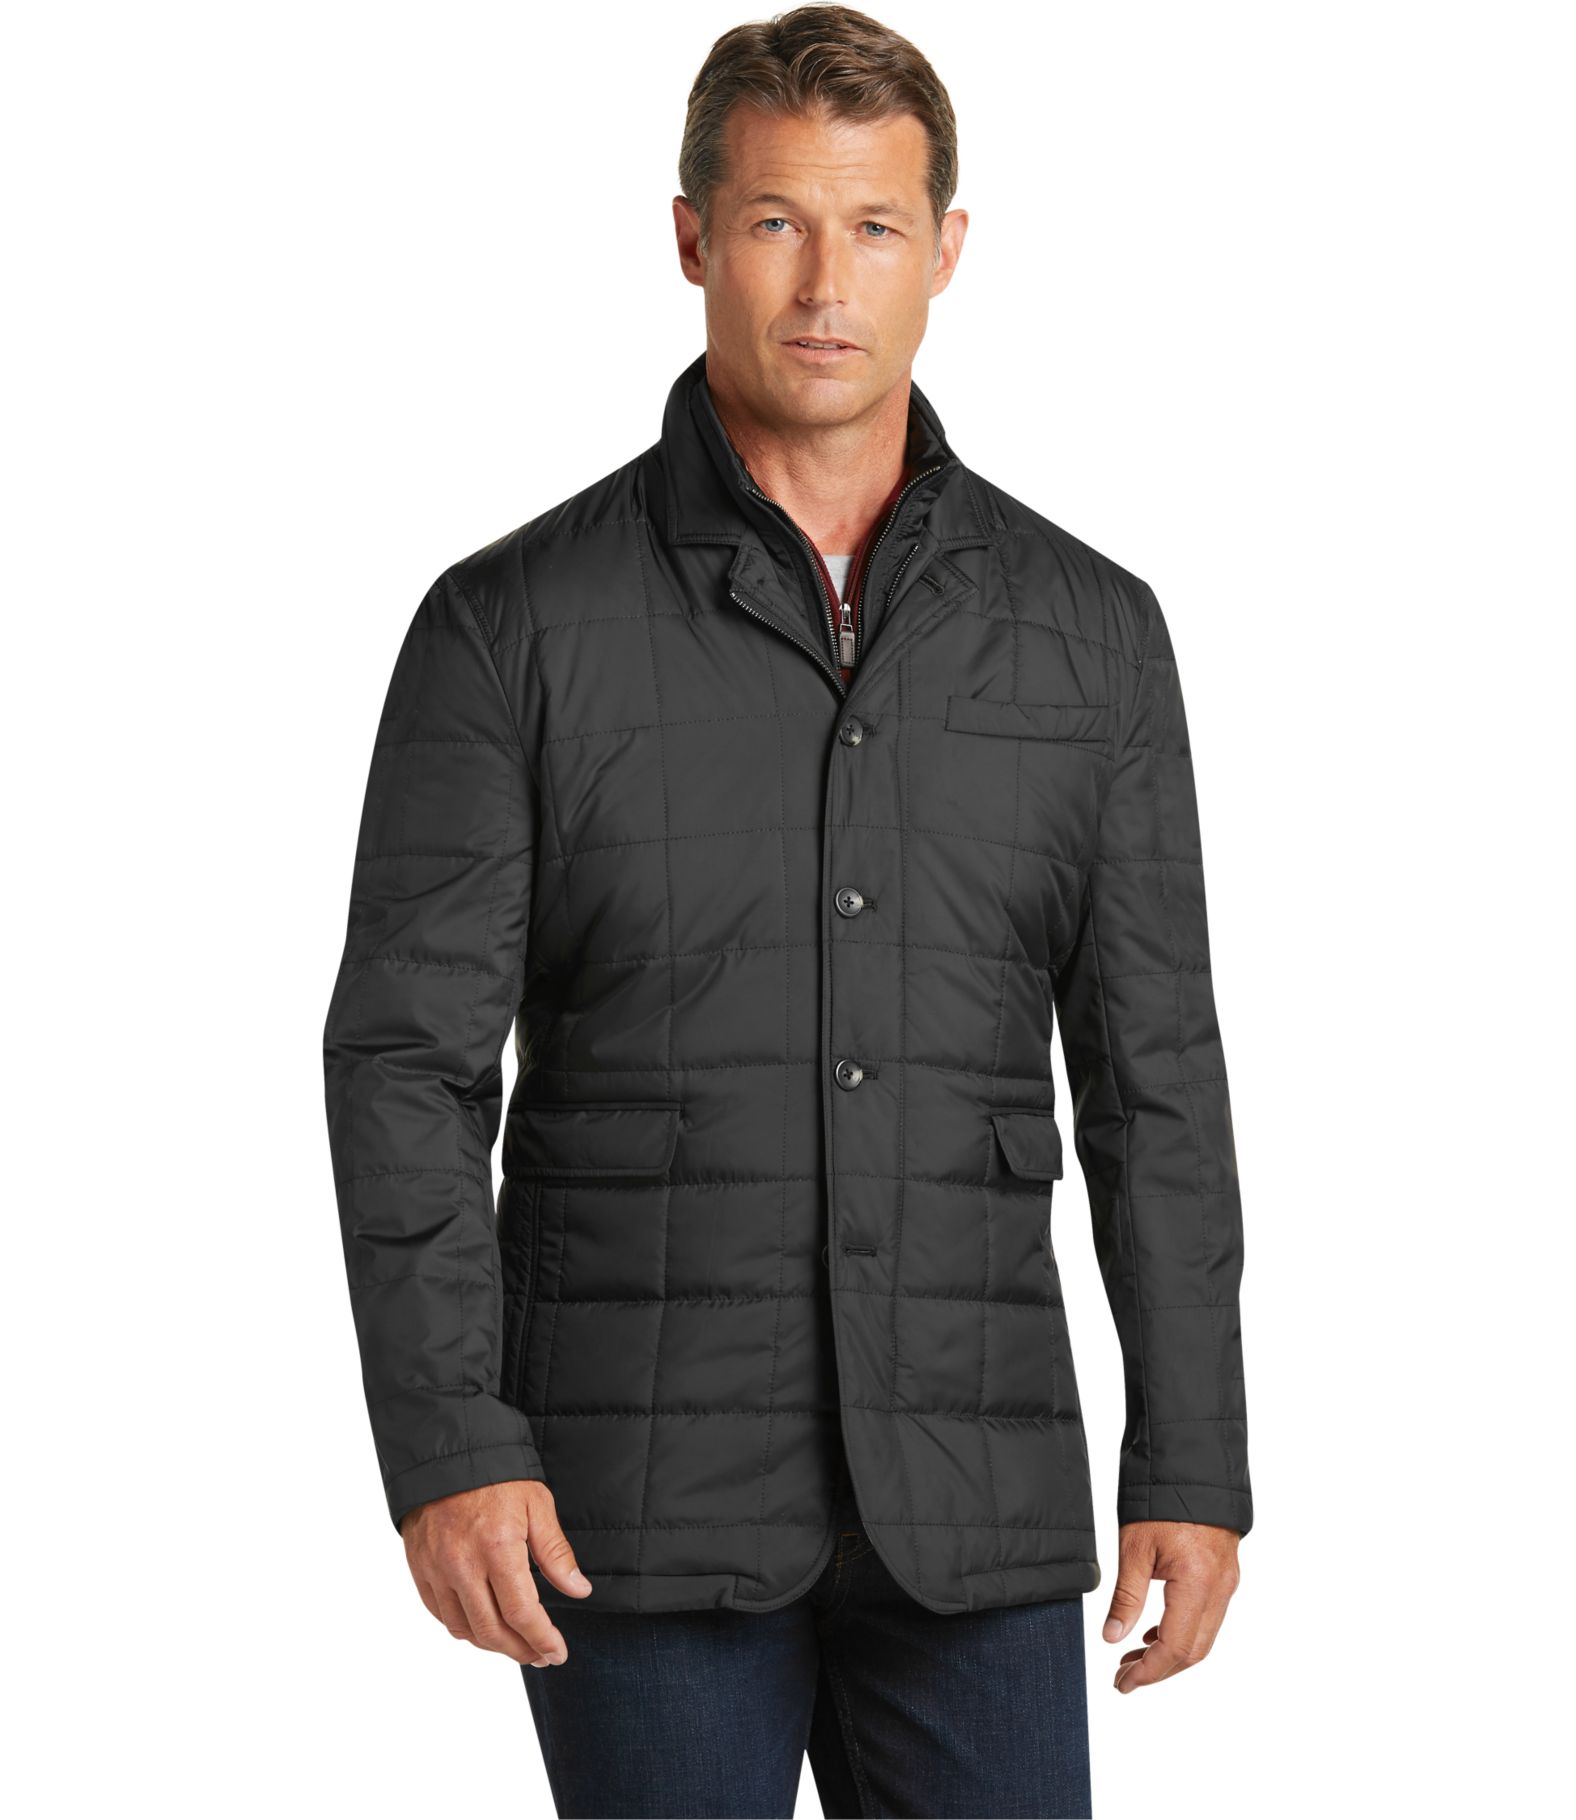 Mens quilted jacket next - Men S Outerwear Jos A Bank Johnson Traditional Fit Quilted Jacket Jos A